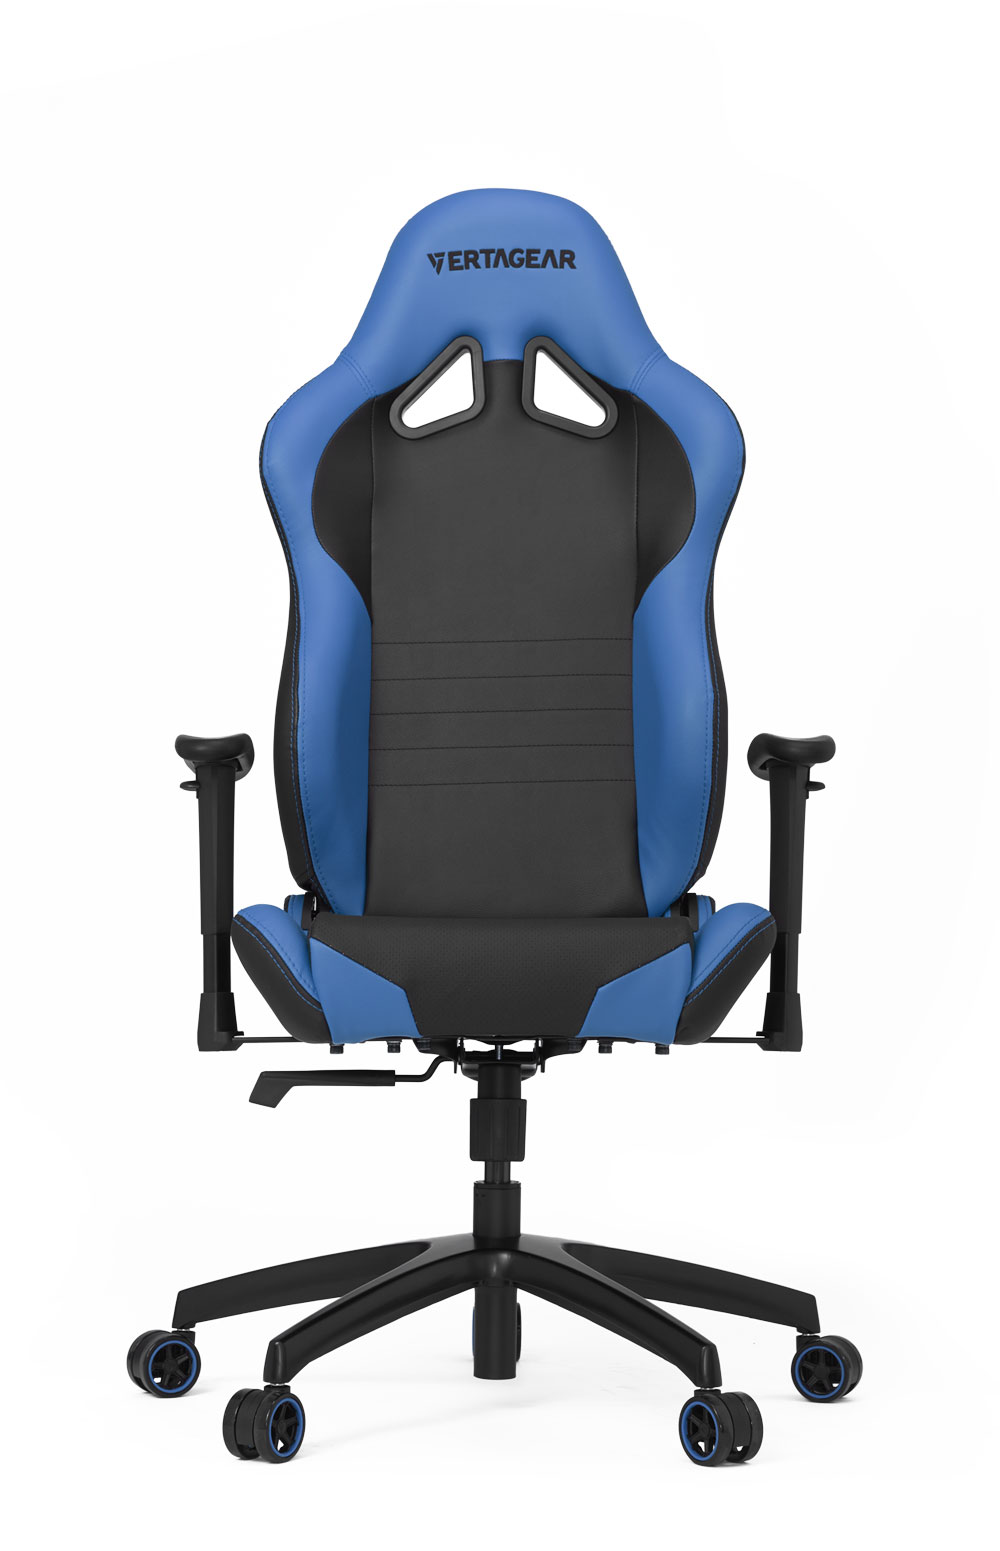 Vertagear SL2000 Gaming Chair Black / Blue